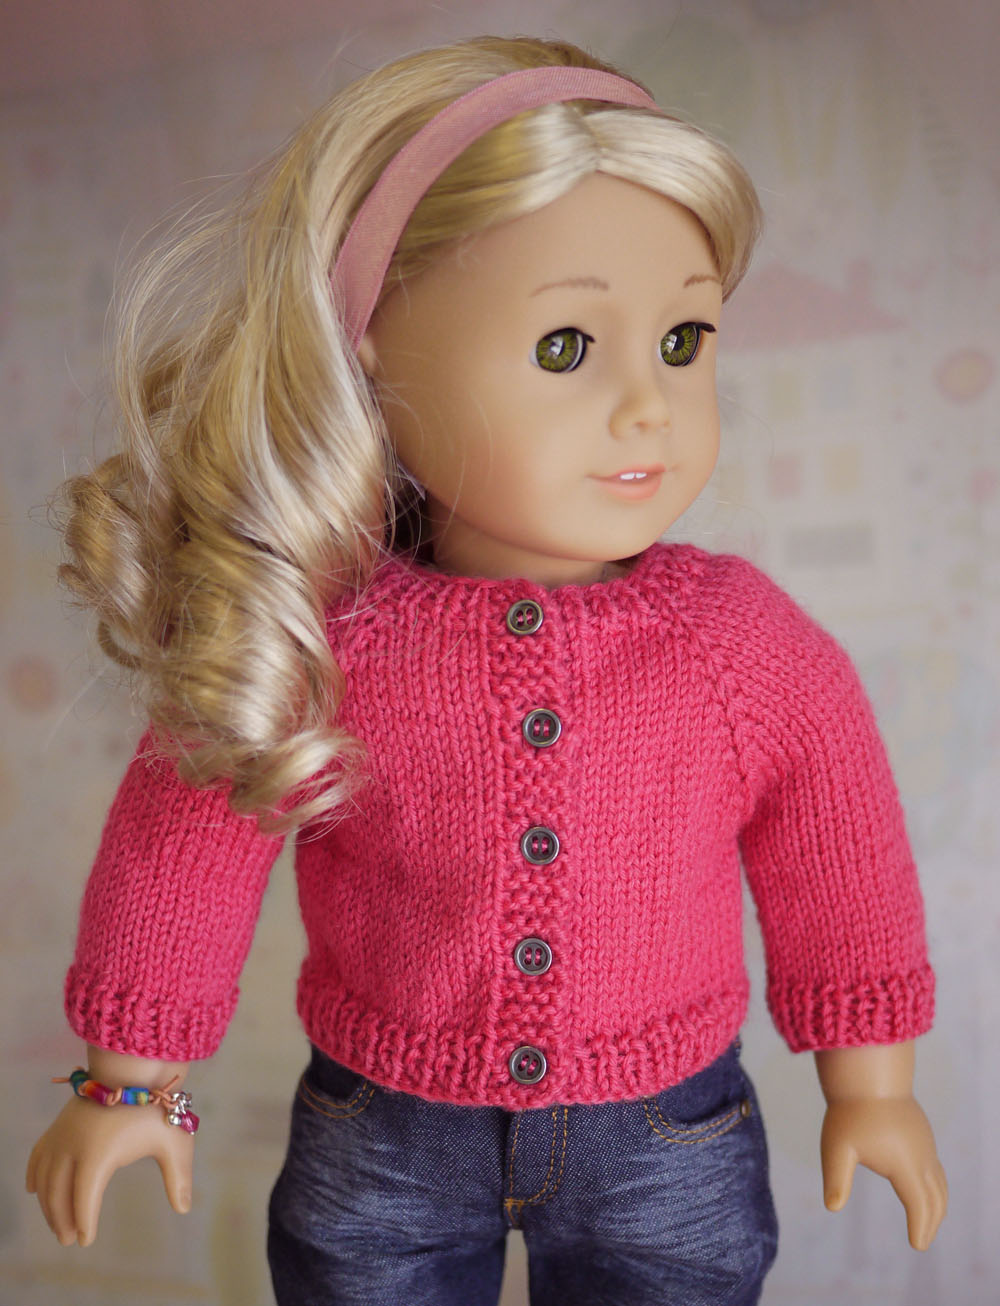 Knitting Pattern Cardigan Girl : American Girl Doll Cardigan Sweater Knitting Pattern Cindy Rice Designs